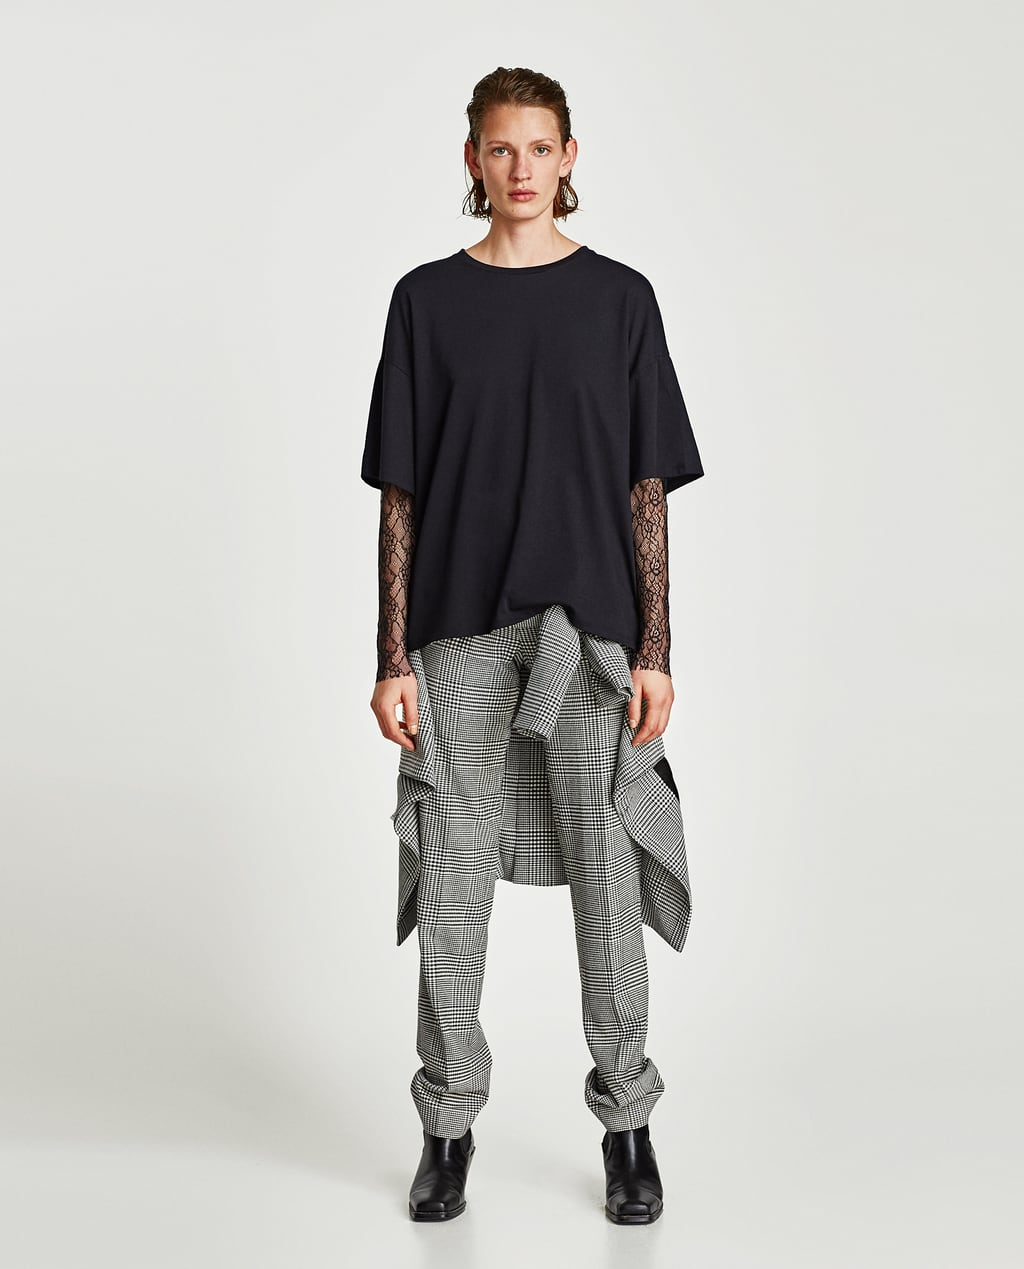 Zara black t shirt india - Image 1 Of T Shirt With Lace Sleeves From Zara